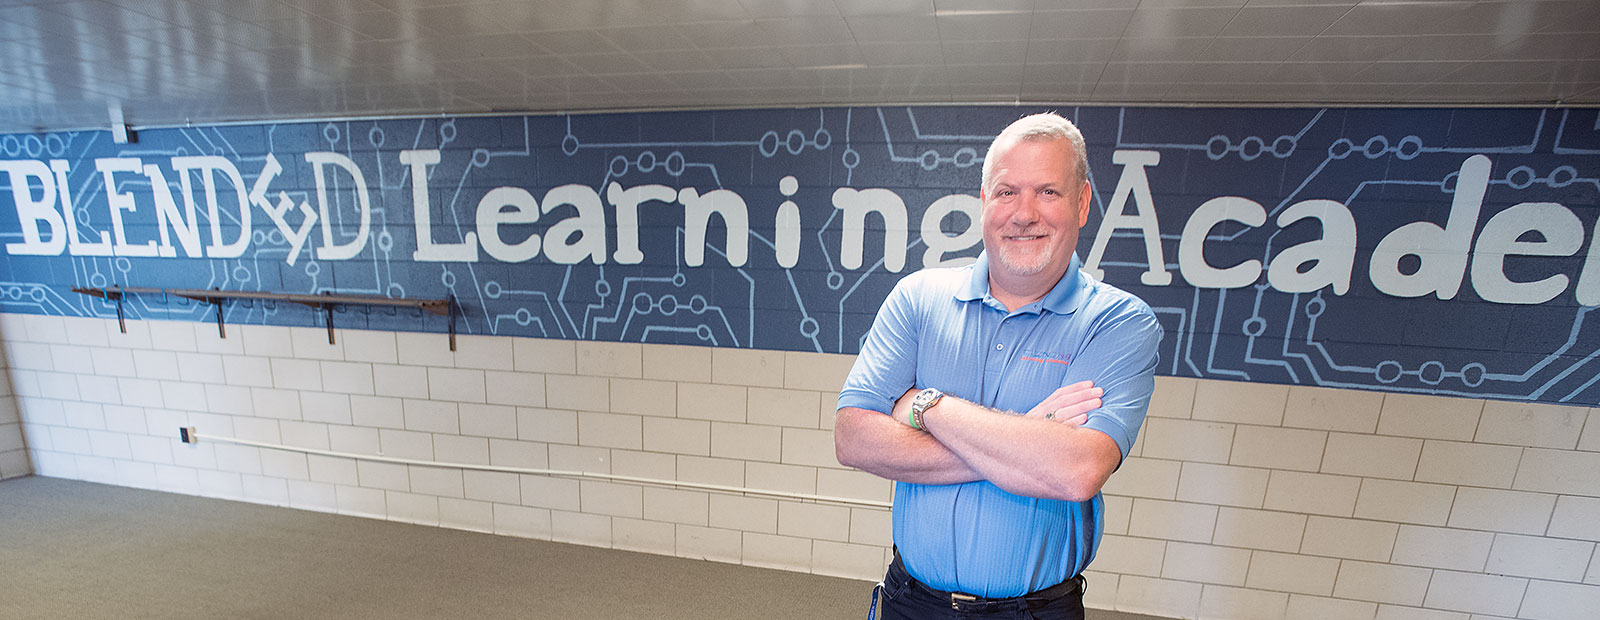 Tim Brannan, Founder and Superintendent of Blended Learning Academies  - Photo Dave Trumpie